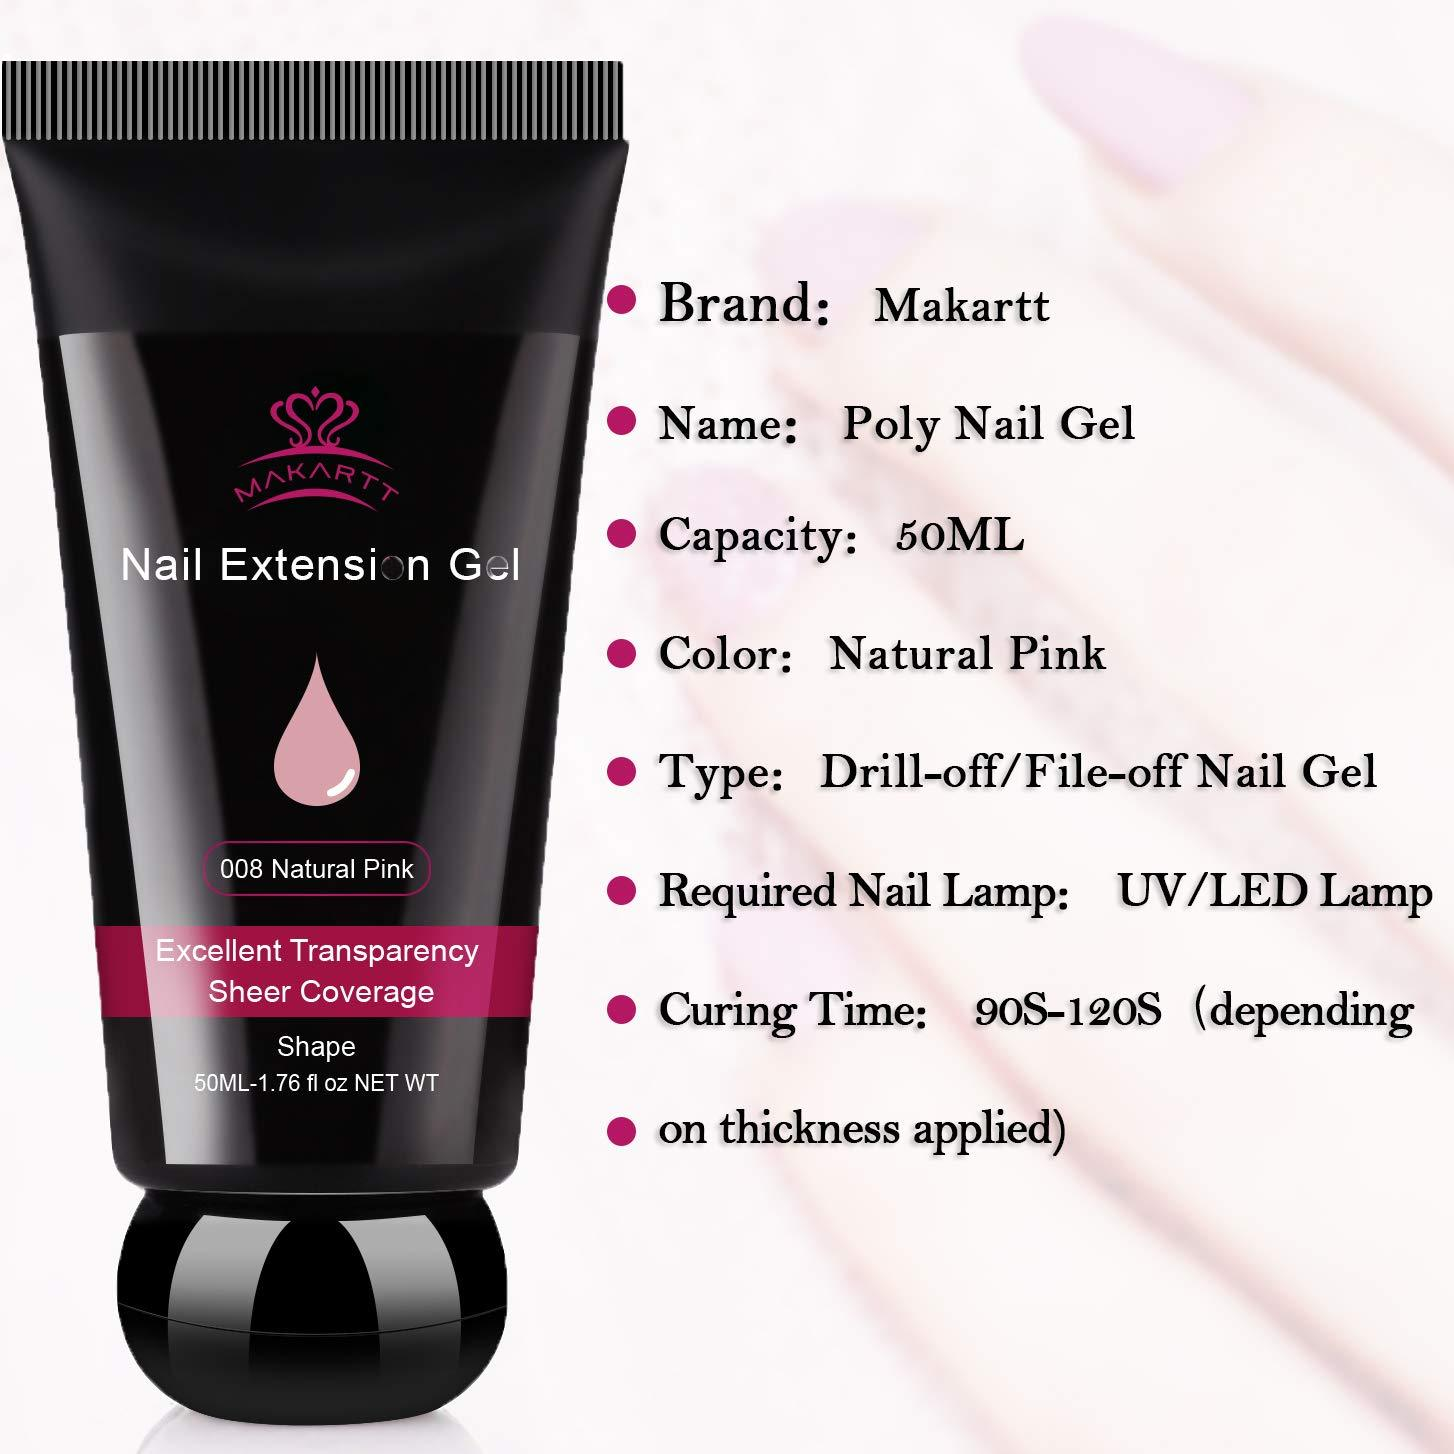 Poly Nail Extension Gel 50ml in Natural Pink